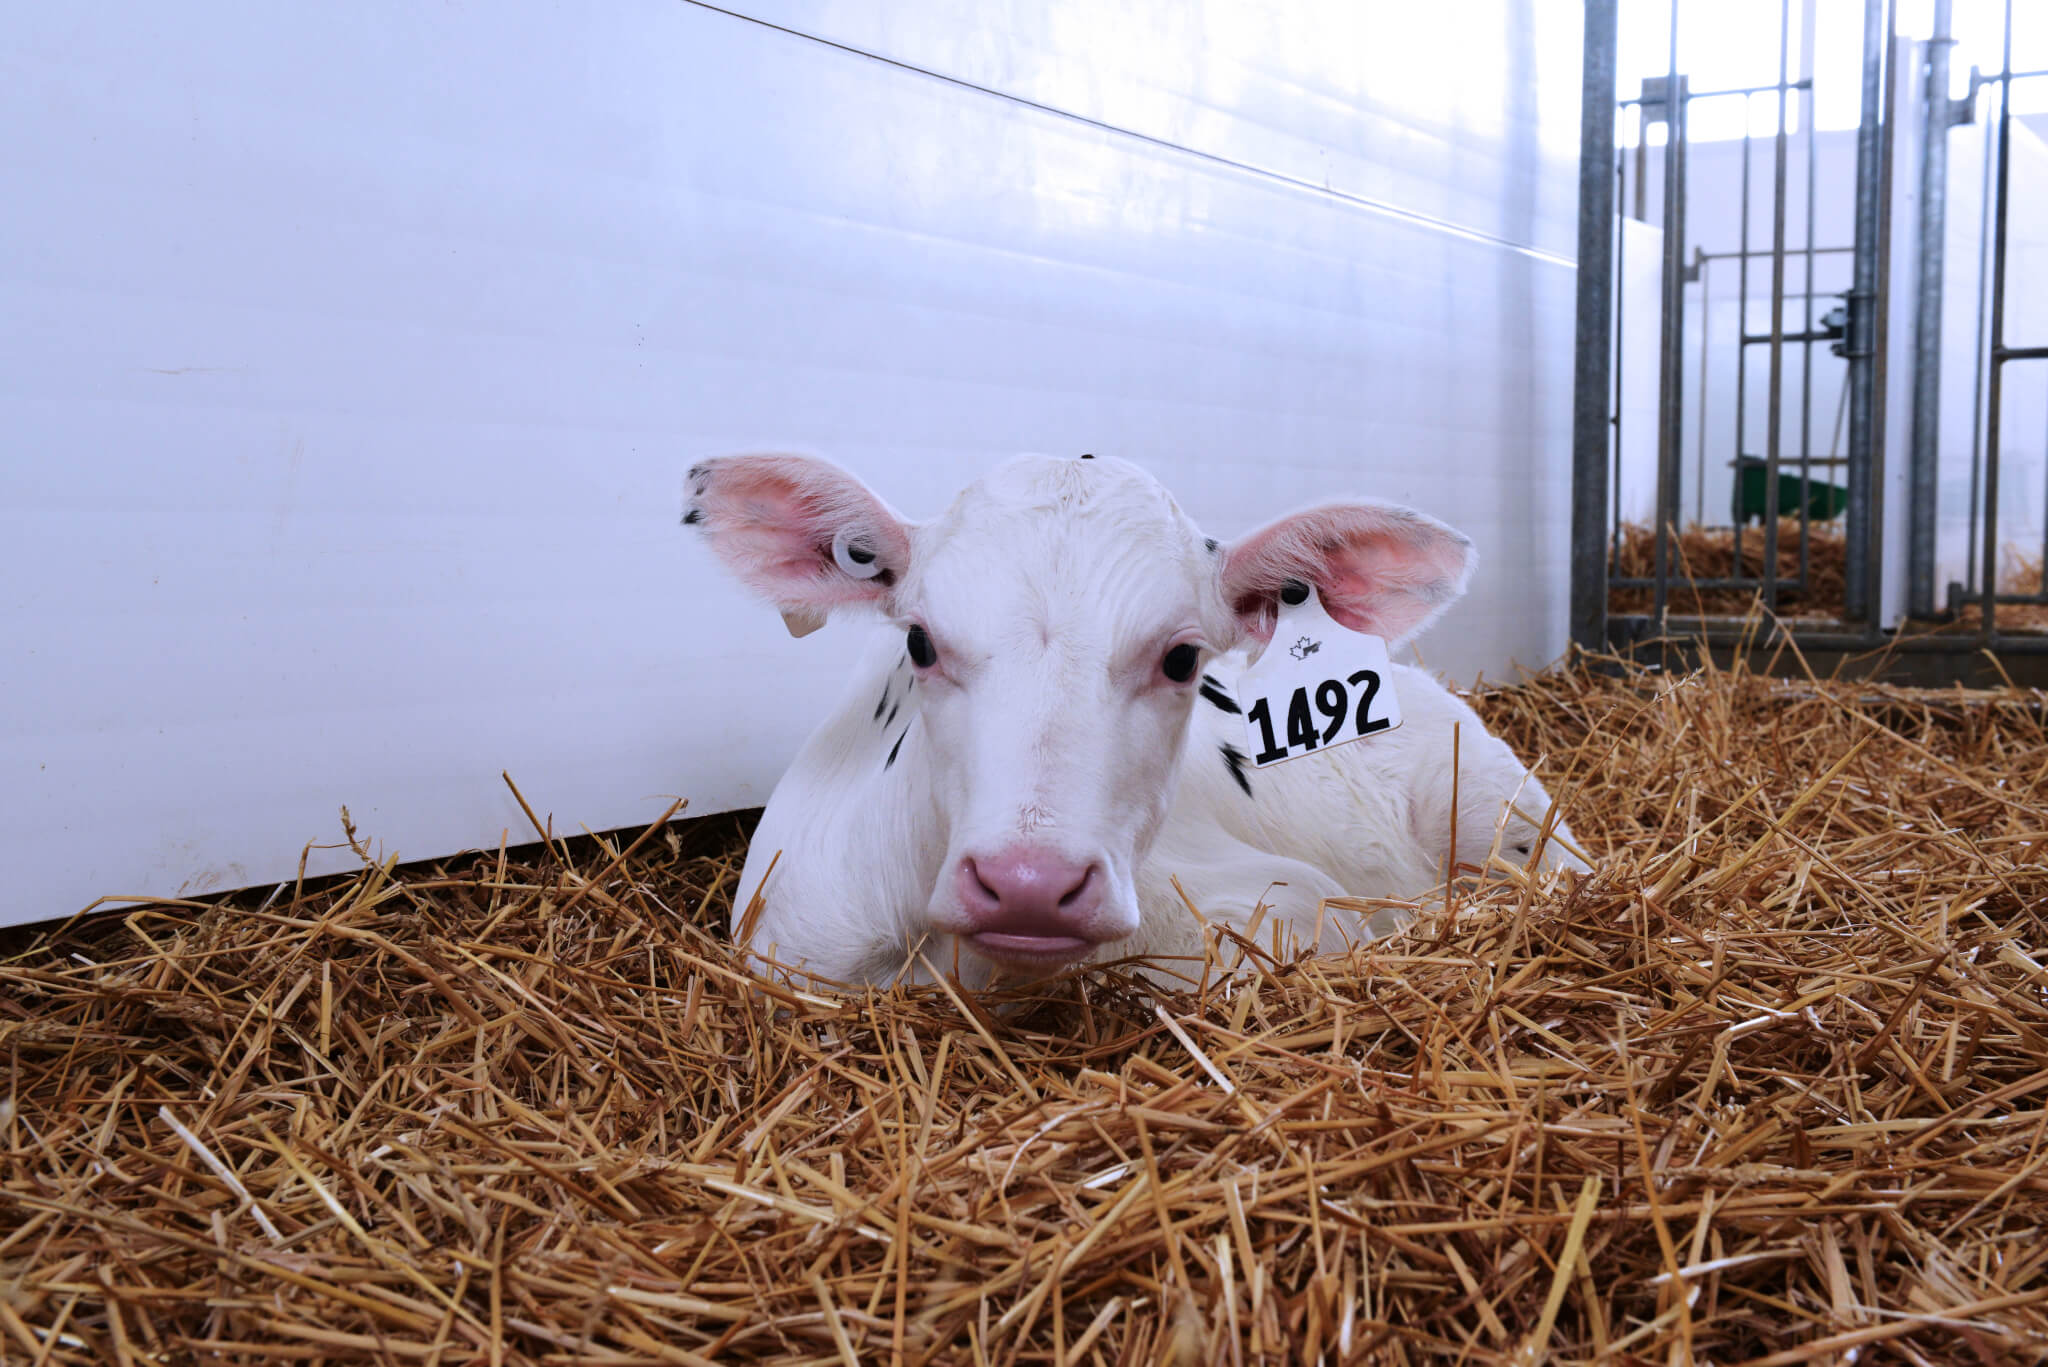 Achieve 24/22 milk replacer, calf lying in pen of straw